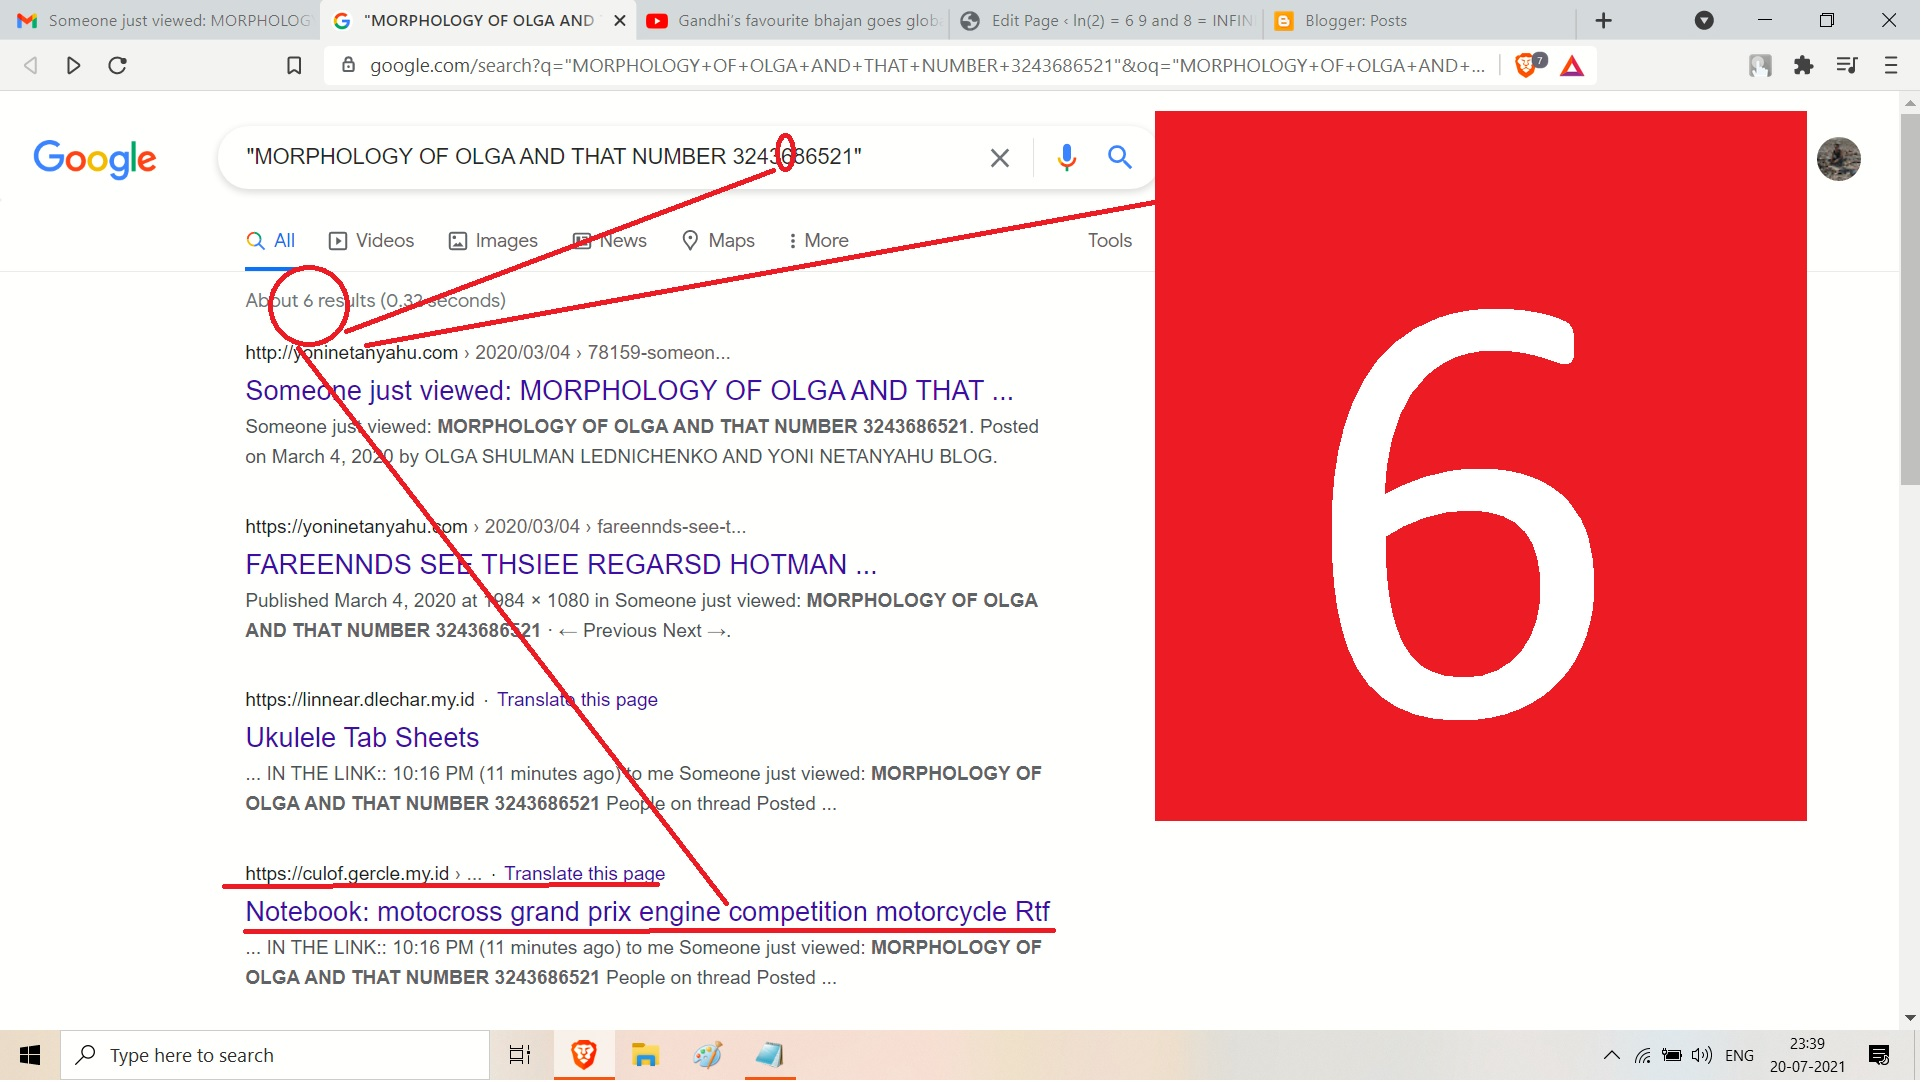 MORPHOLOGY OF OLGA AND ALINA AND OTHERS FROM 324368 -6 - 521 NUMBER ==.=== HOWZ 6